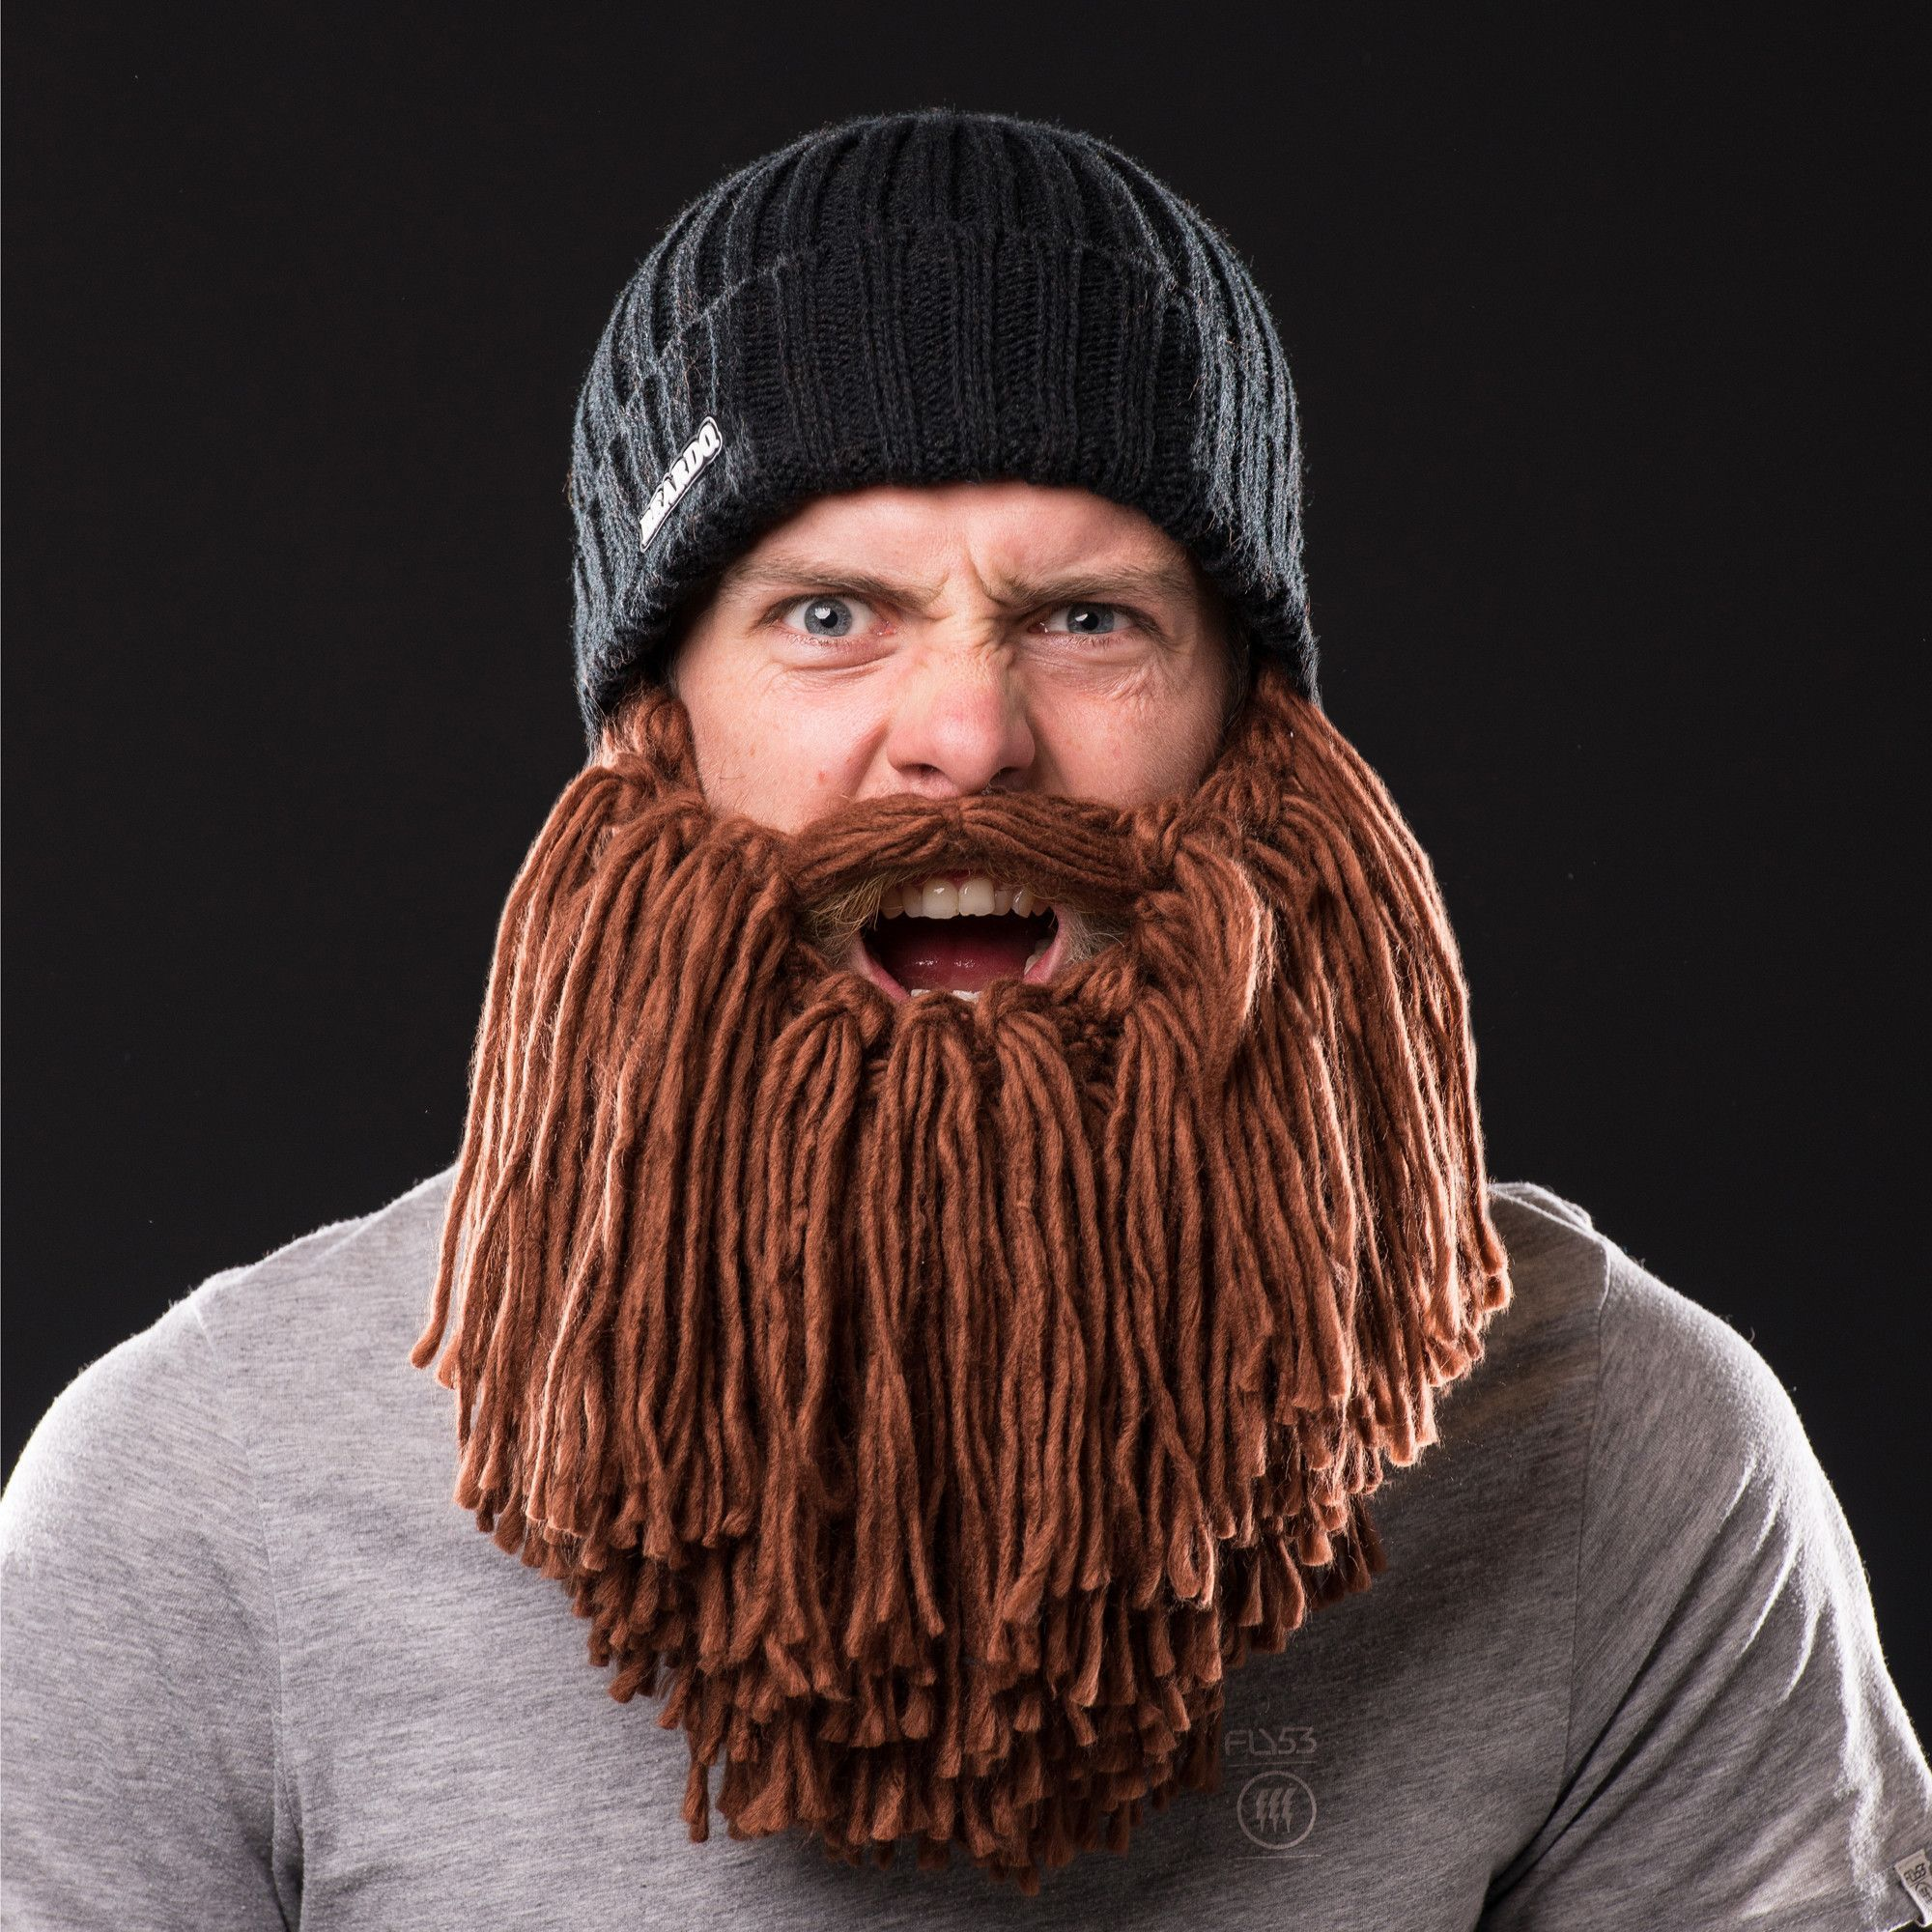 Official Vikings Hat with Beard | Products | Pinterest | Häkeln